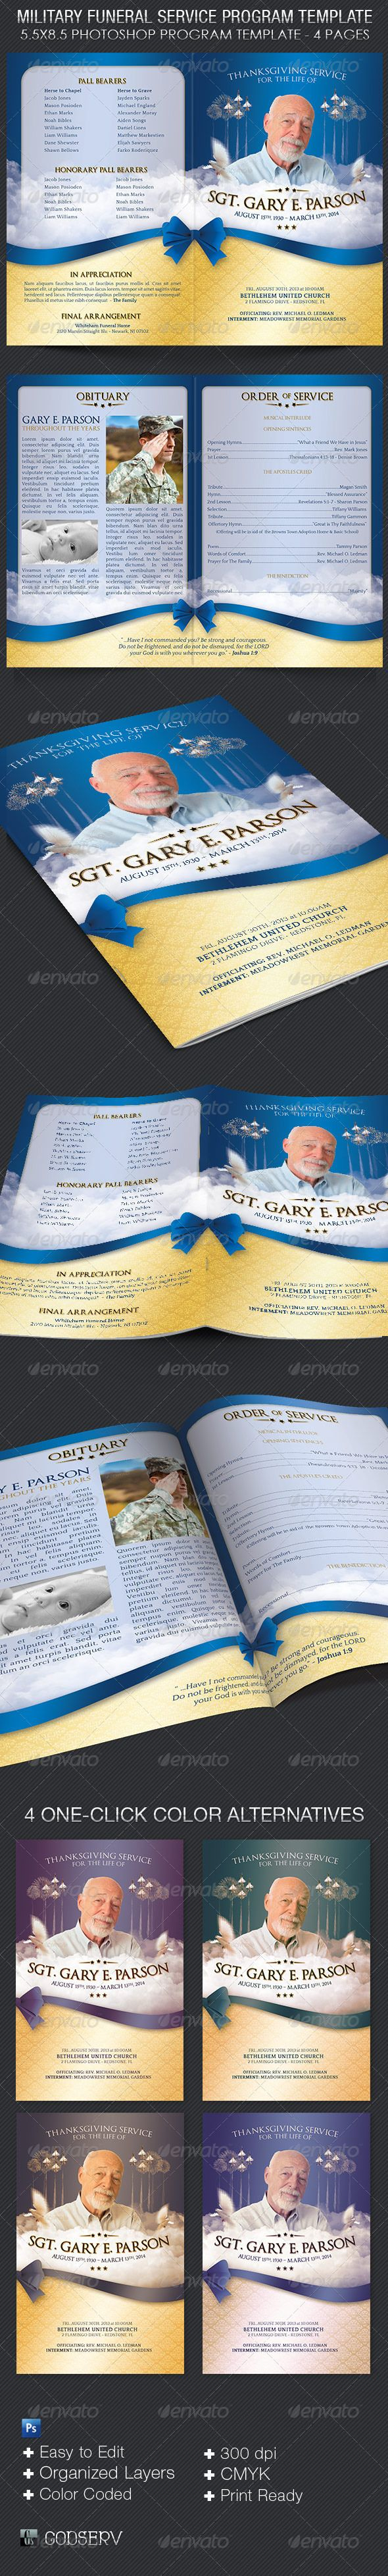 Military Funeral Service Program Template - $8.00 The Military Funeral Service Program Template is for a modern commemorative or home going service. Designed specifically for military funerals but can be edited for other funerals and events like weddings and receptions.